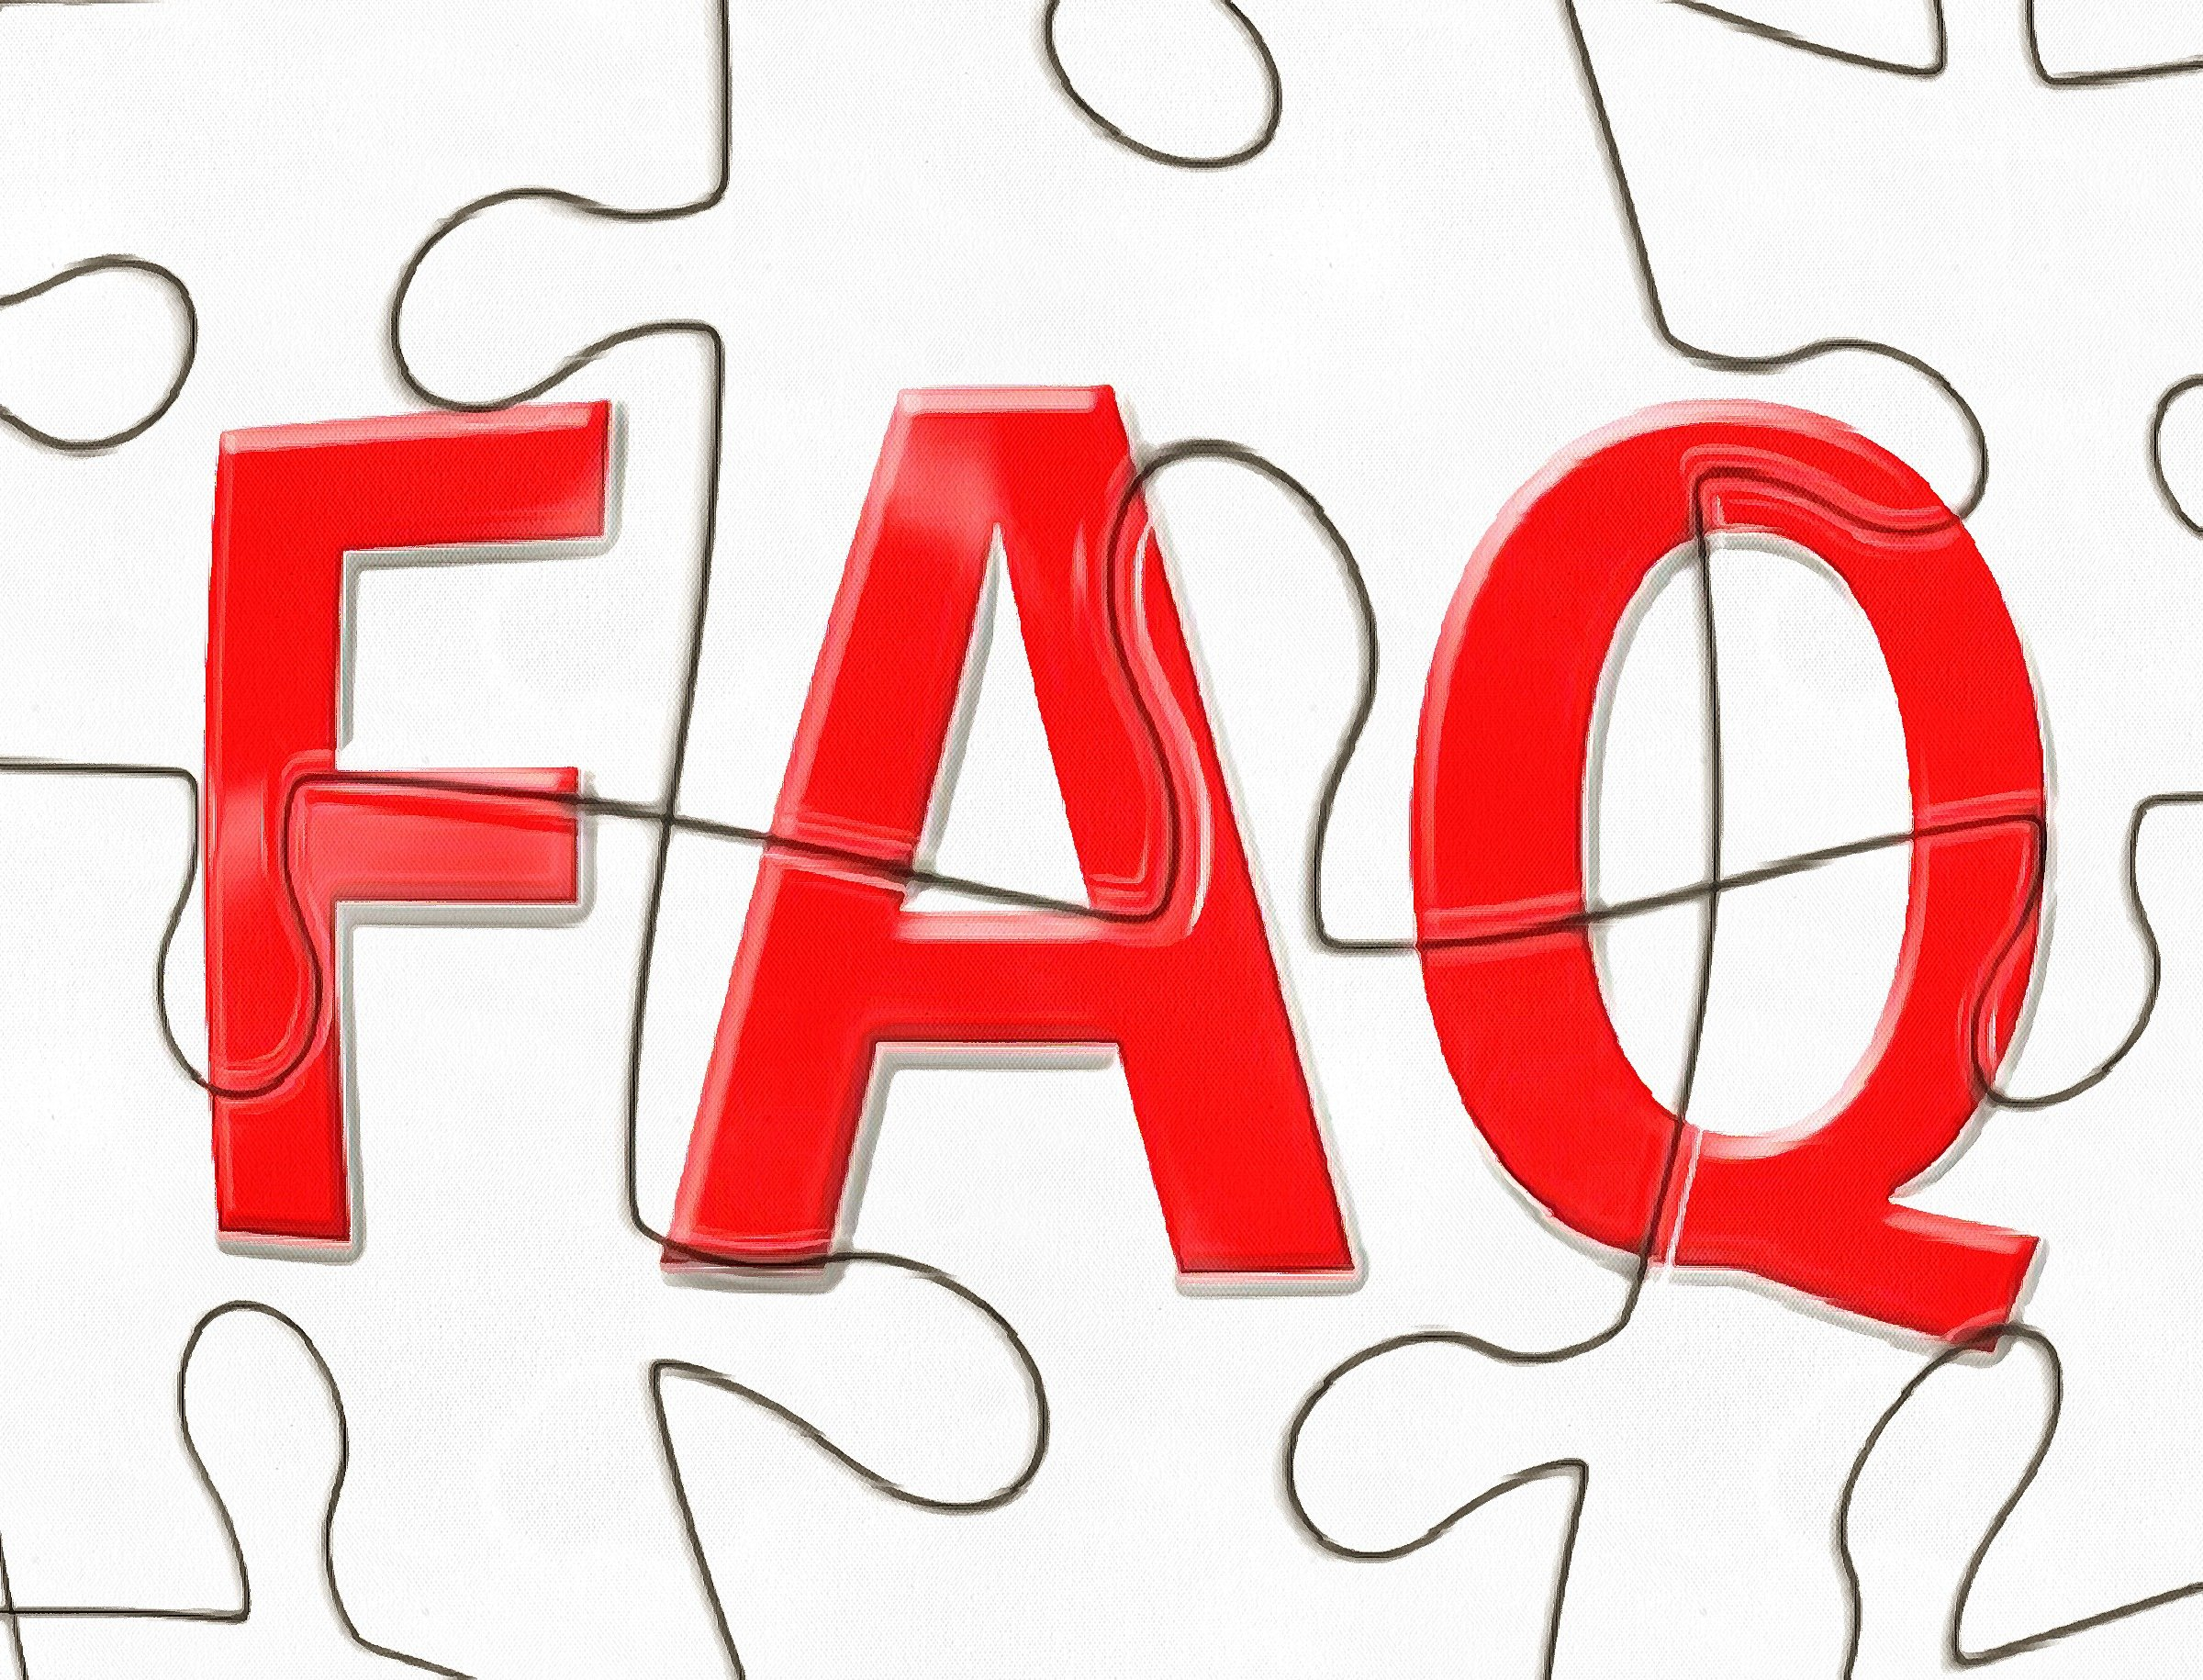 FAQ - STOCK FREE IMAGES. Frequently Asked Questions